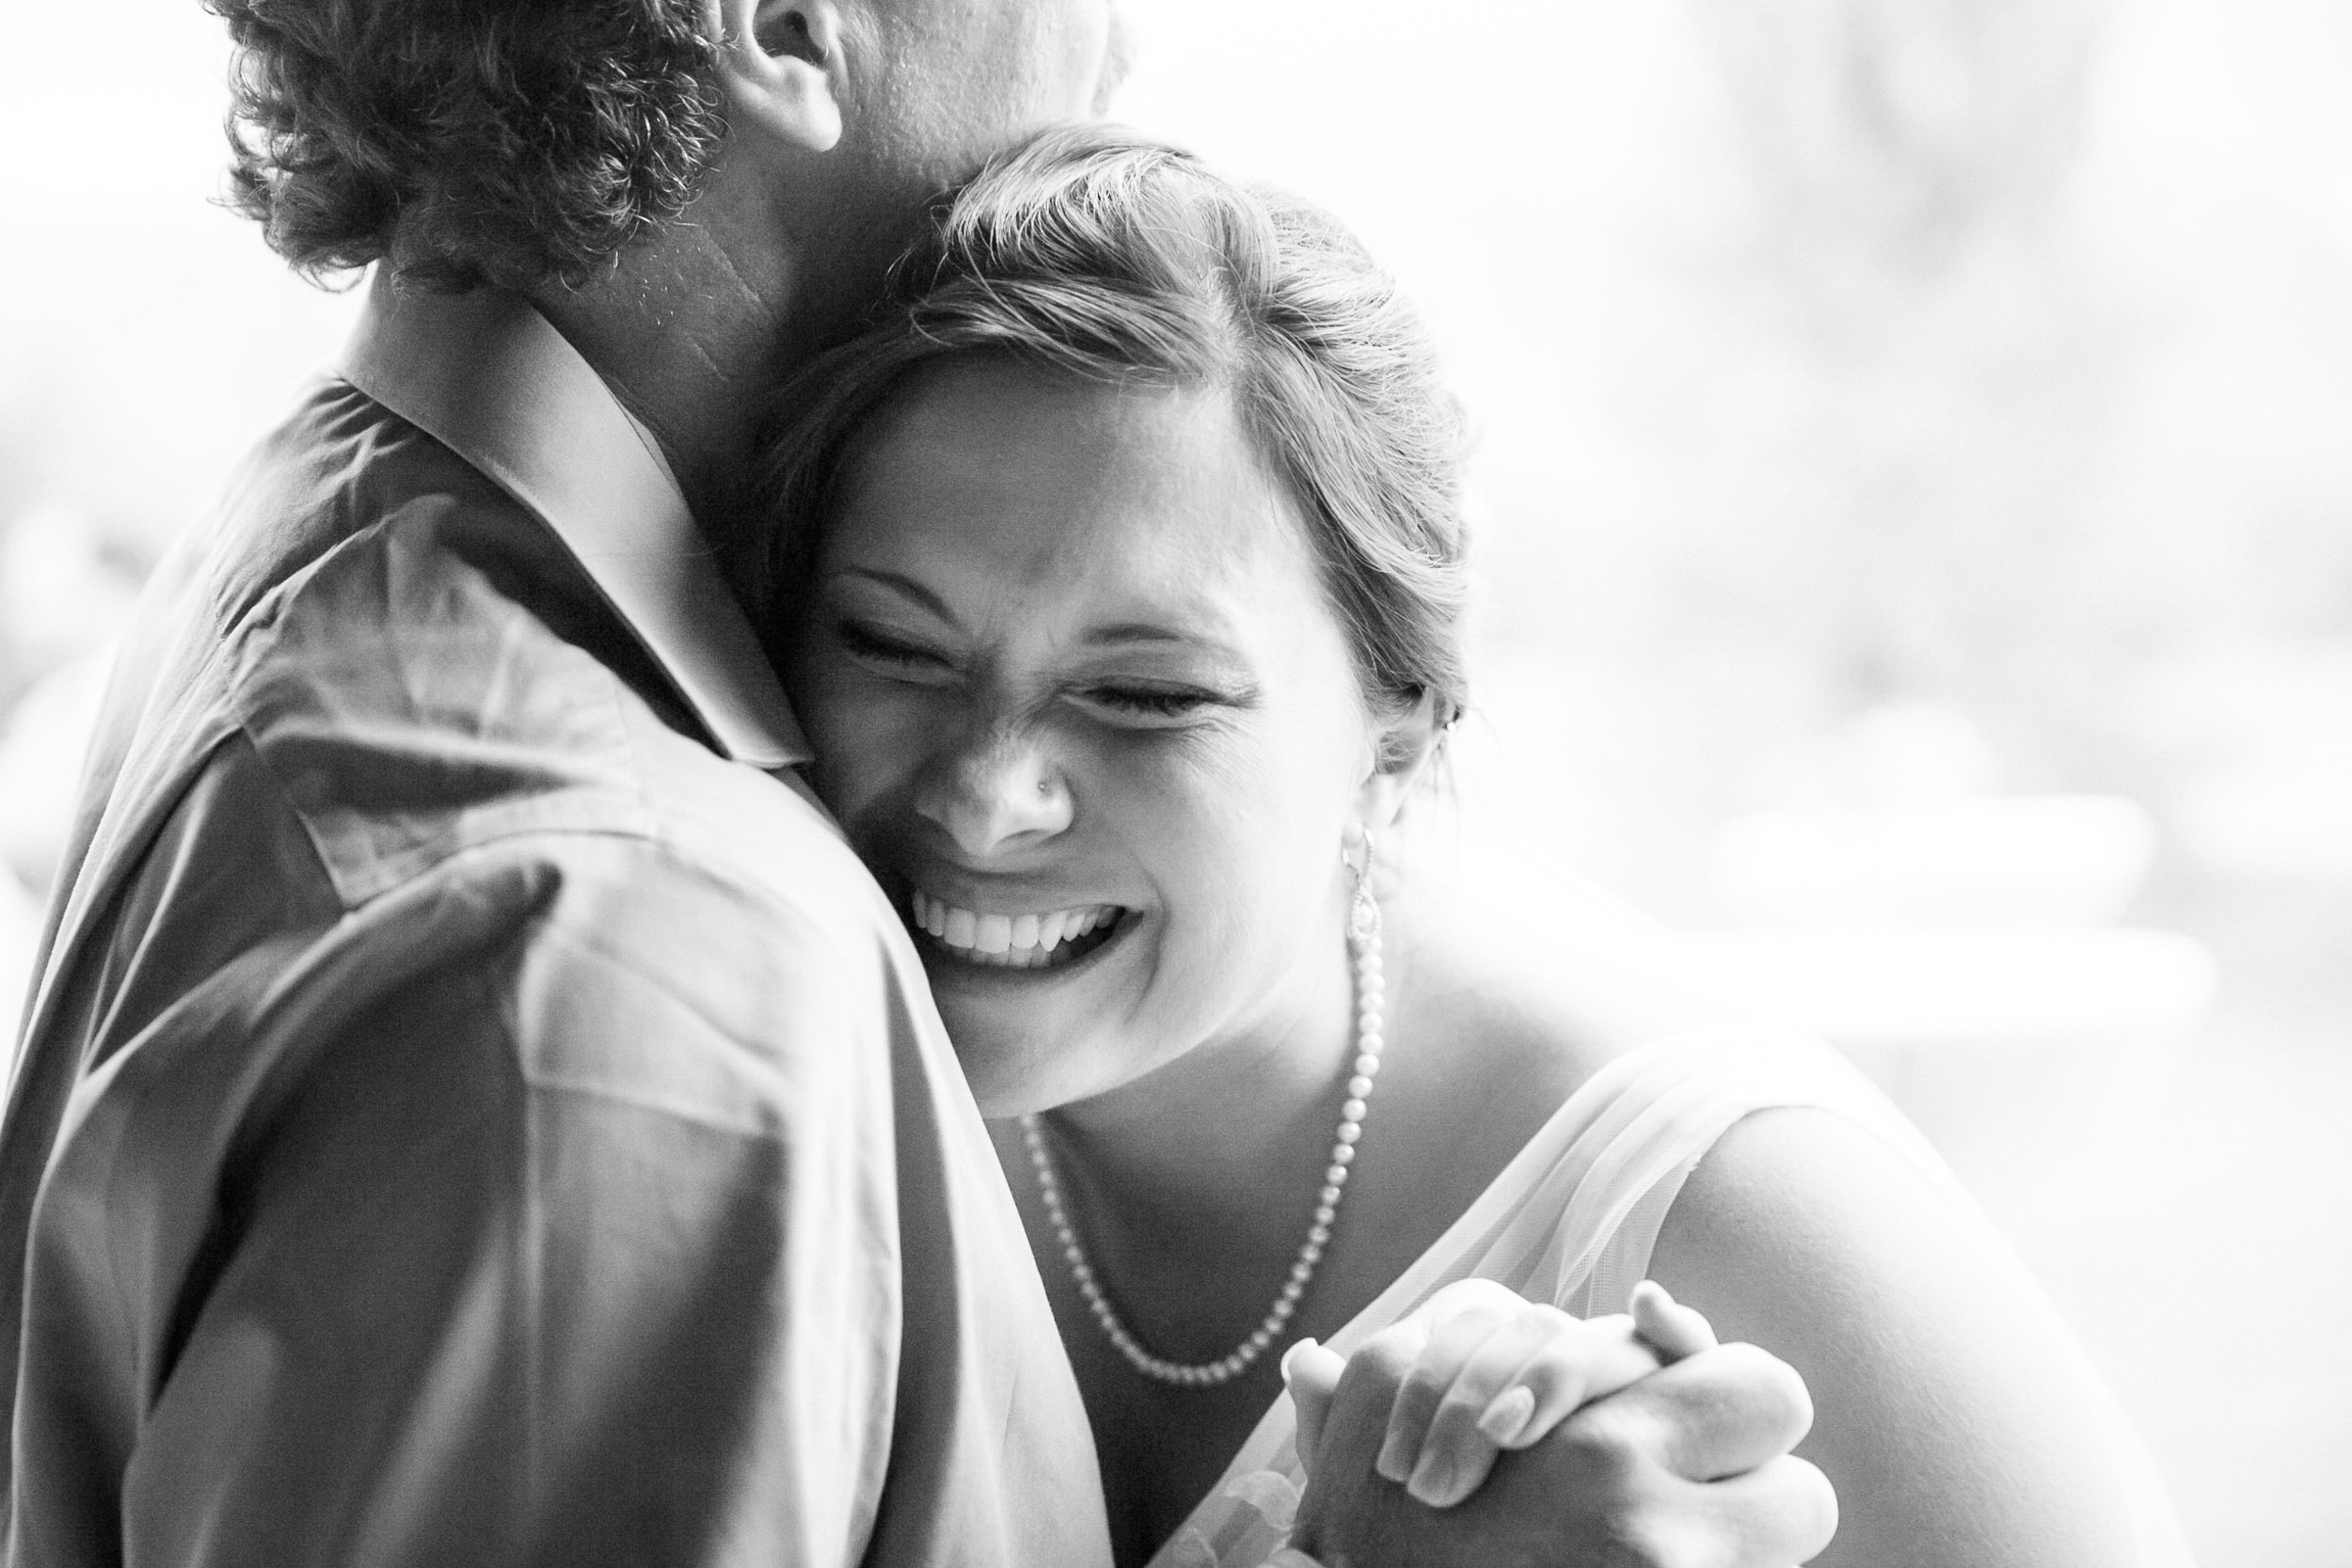 001_The best wedding photography from Jackson Hole, Wyoming and beyond by photographer Hannah Hardaway.jpg